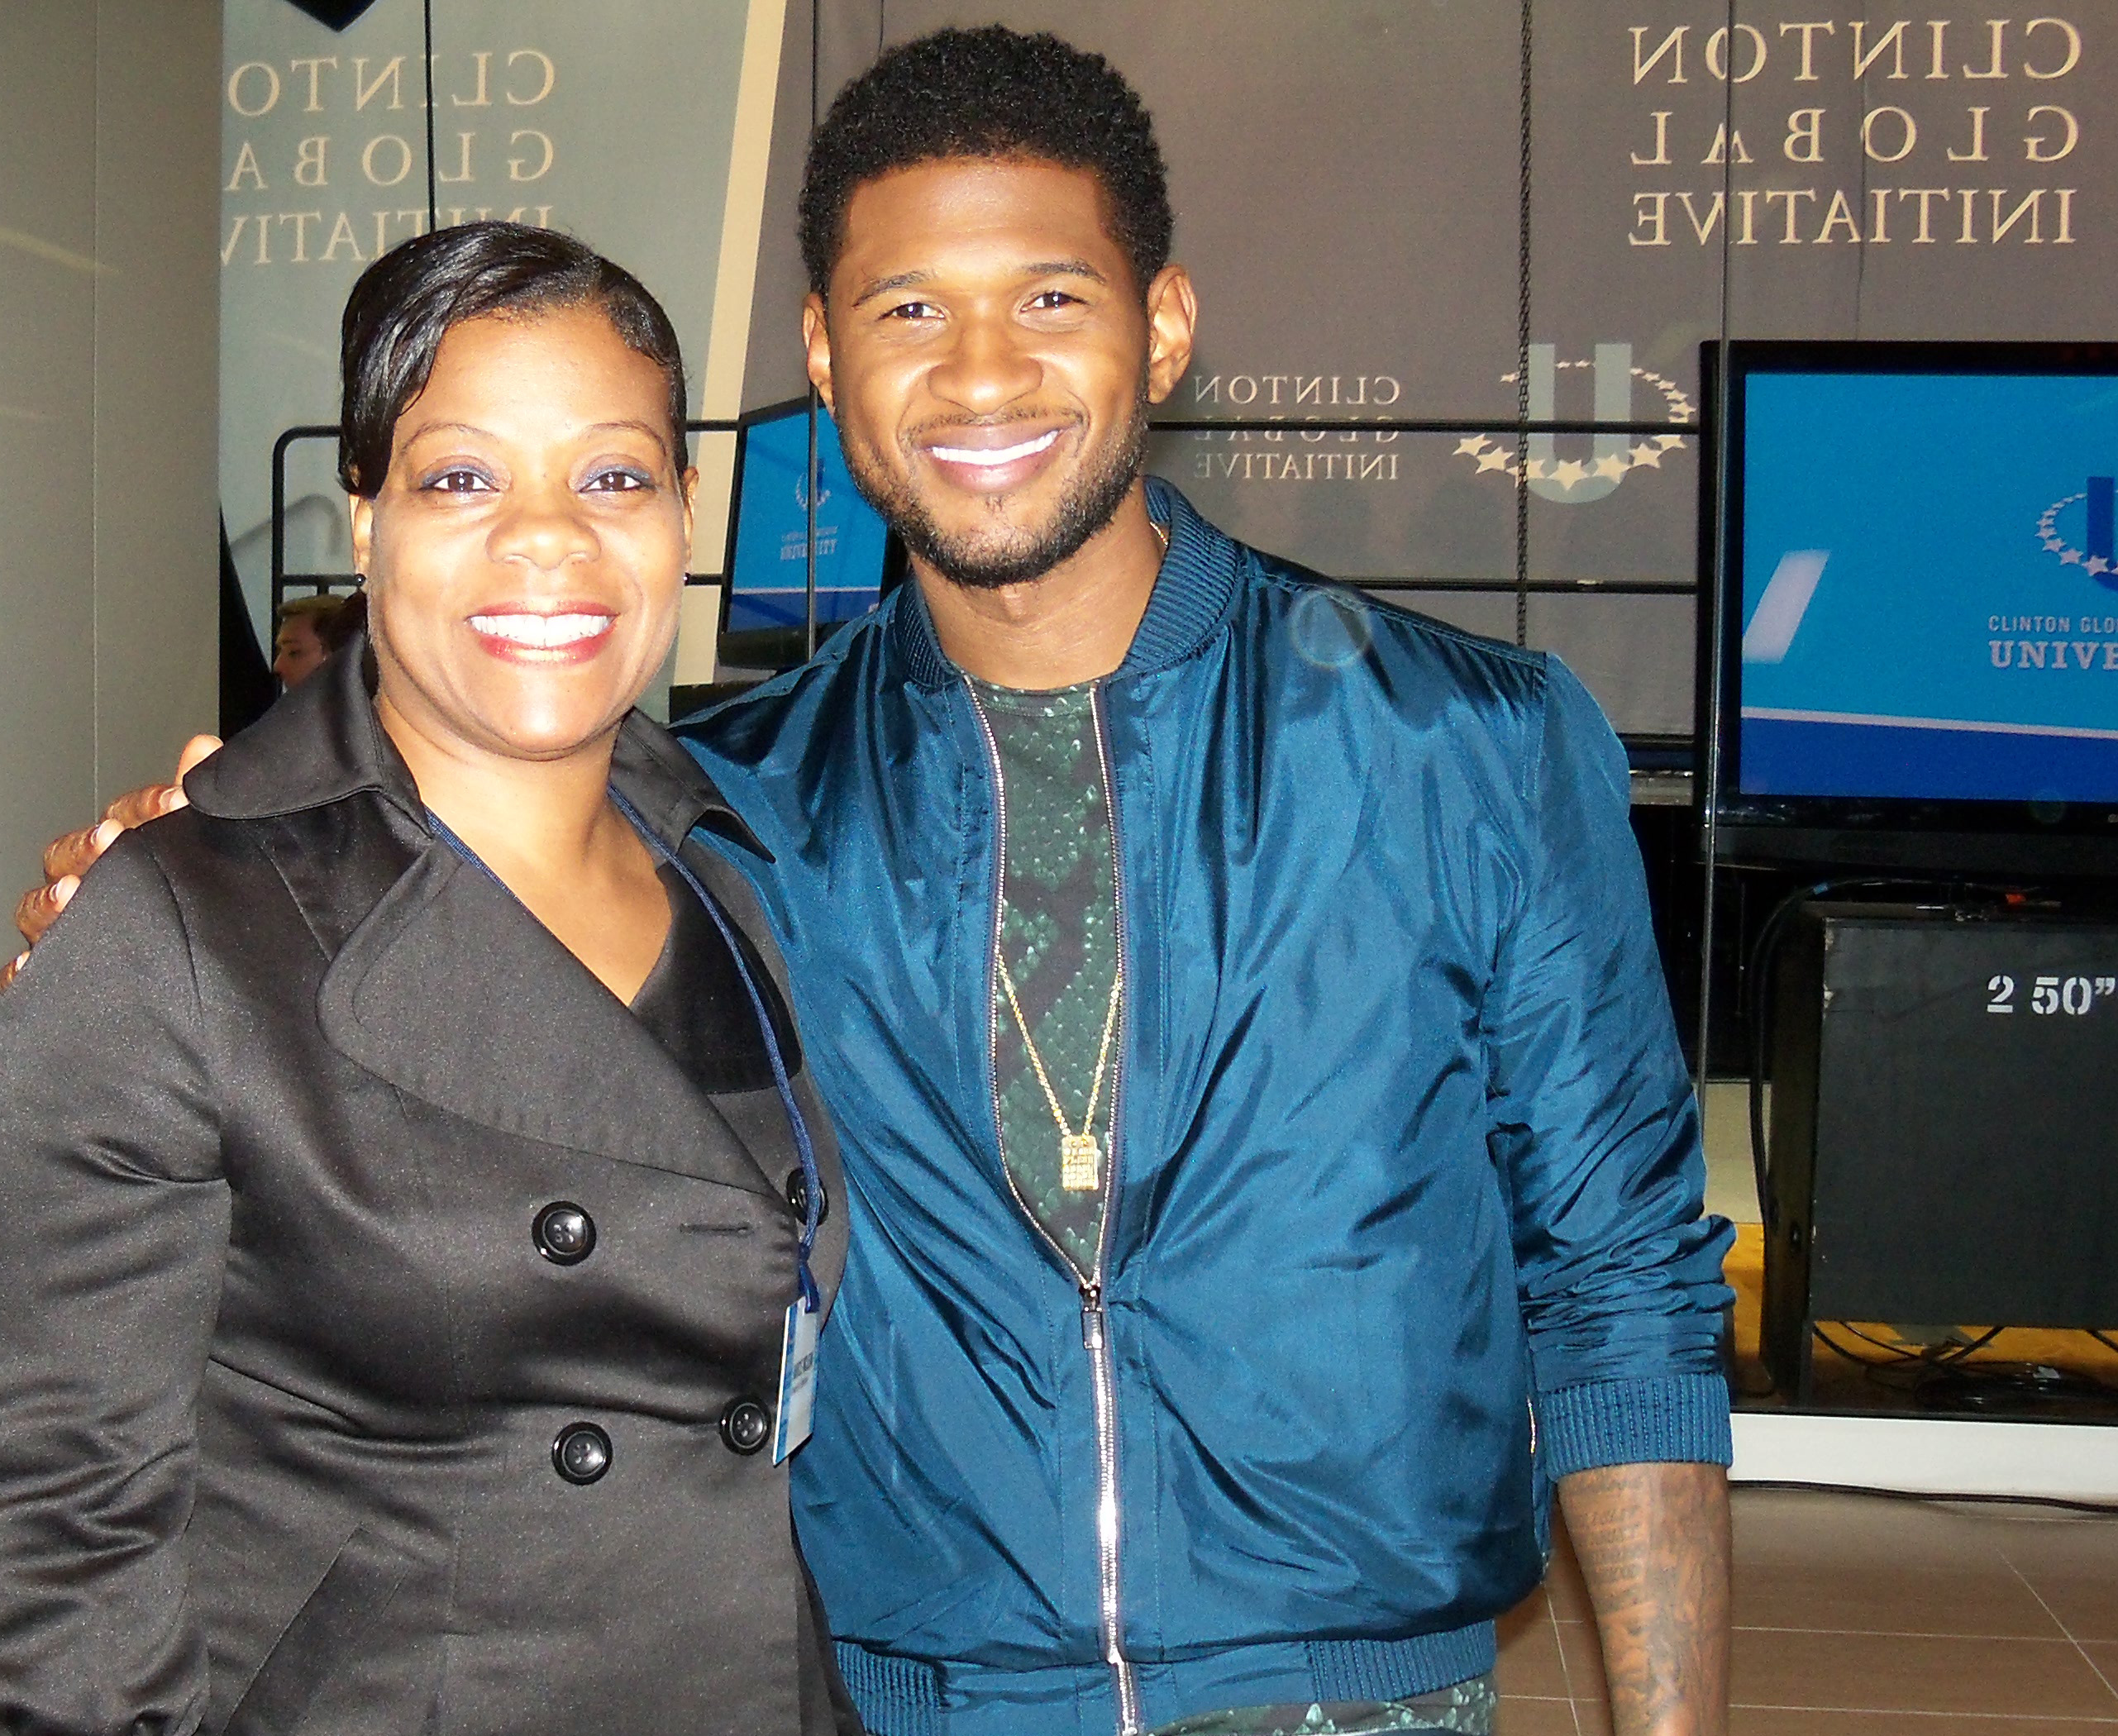 Janice and Usher